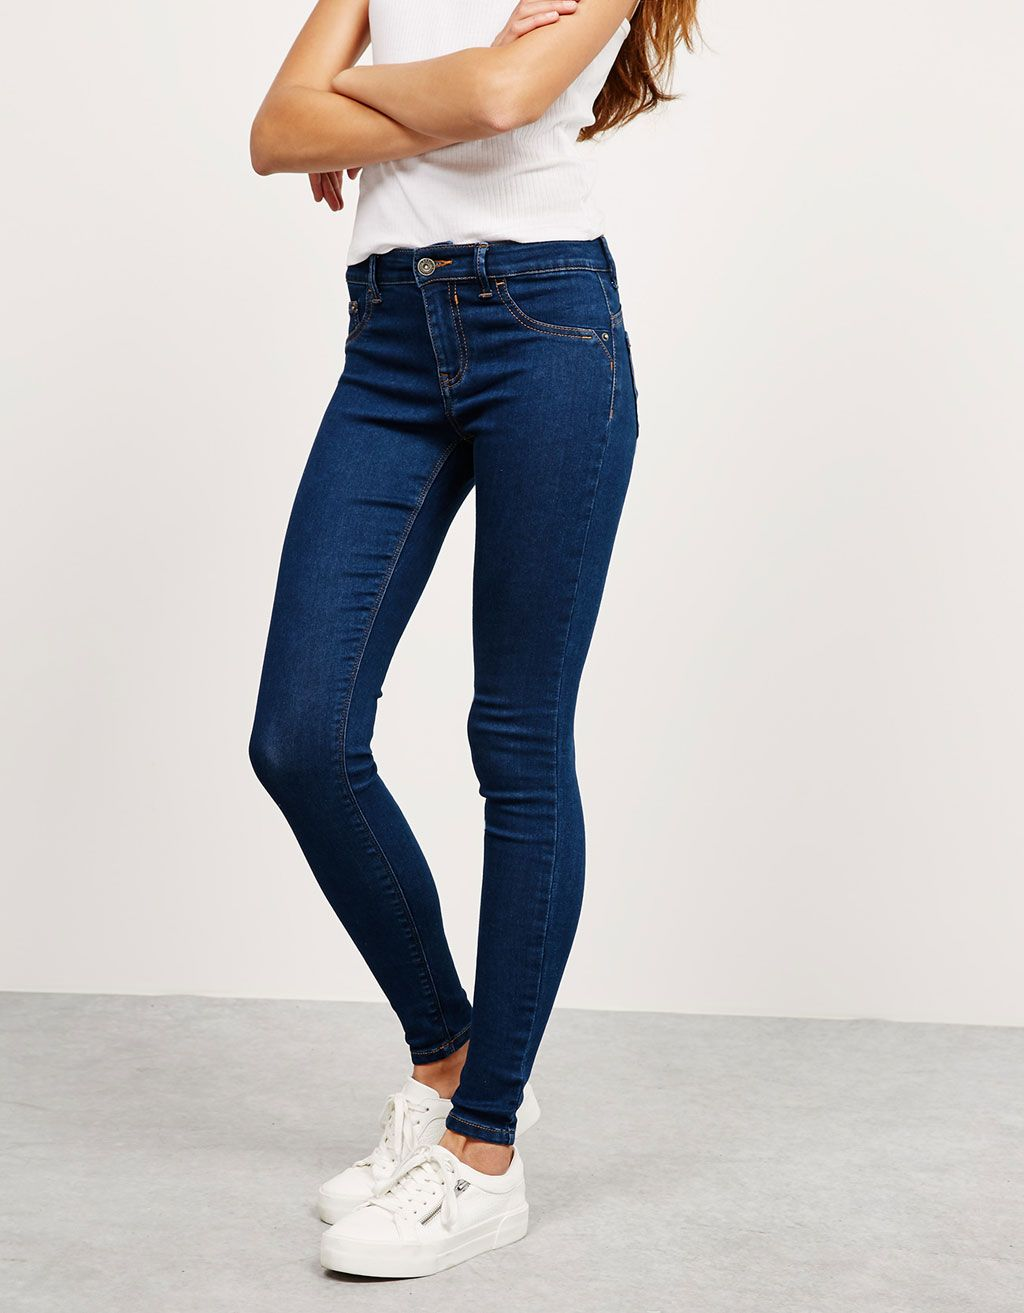 Pin By Preppy Crew On Things I Ve Bought Women Jeans Celebrity Pink Jeans Jean Dress Outfits